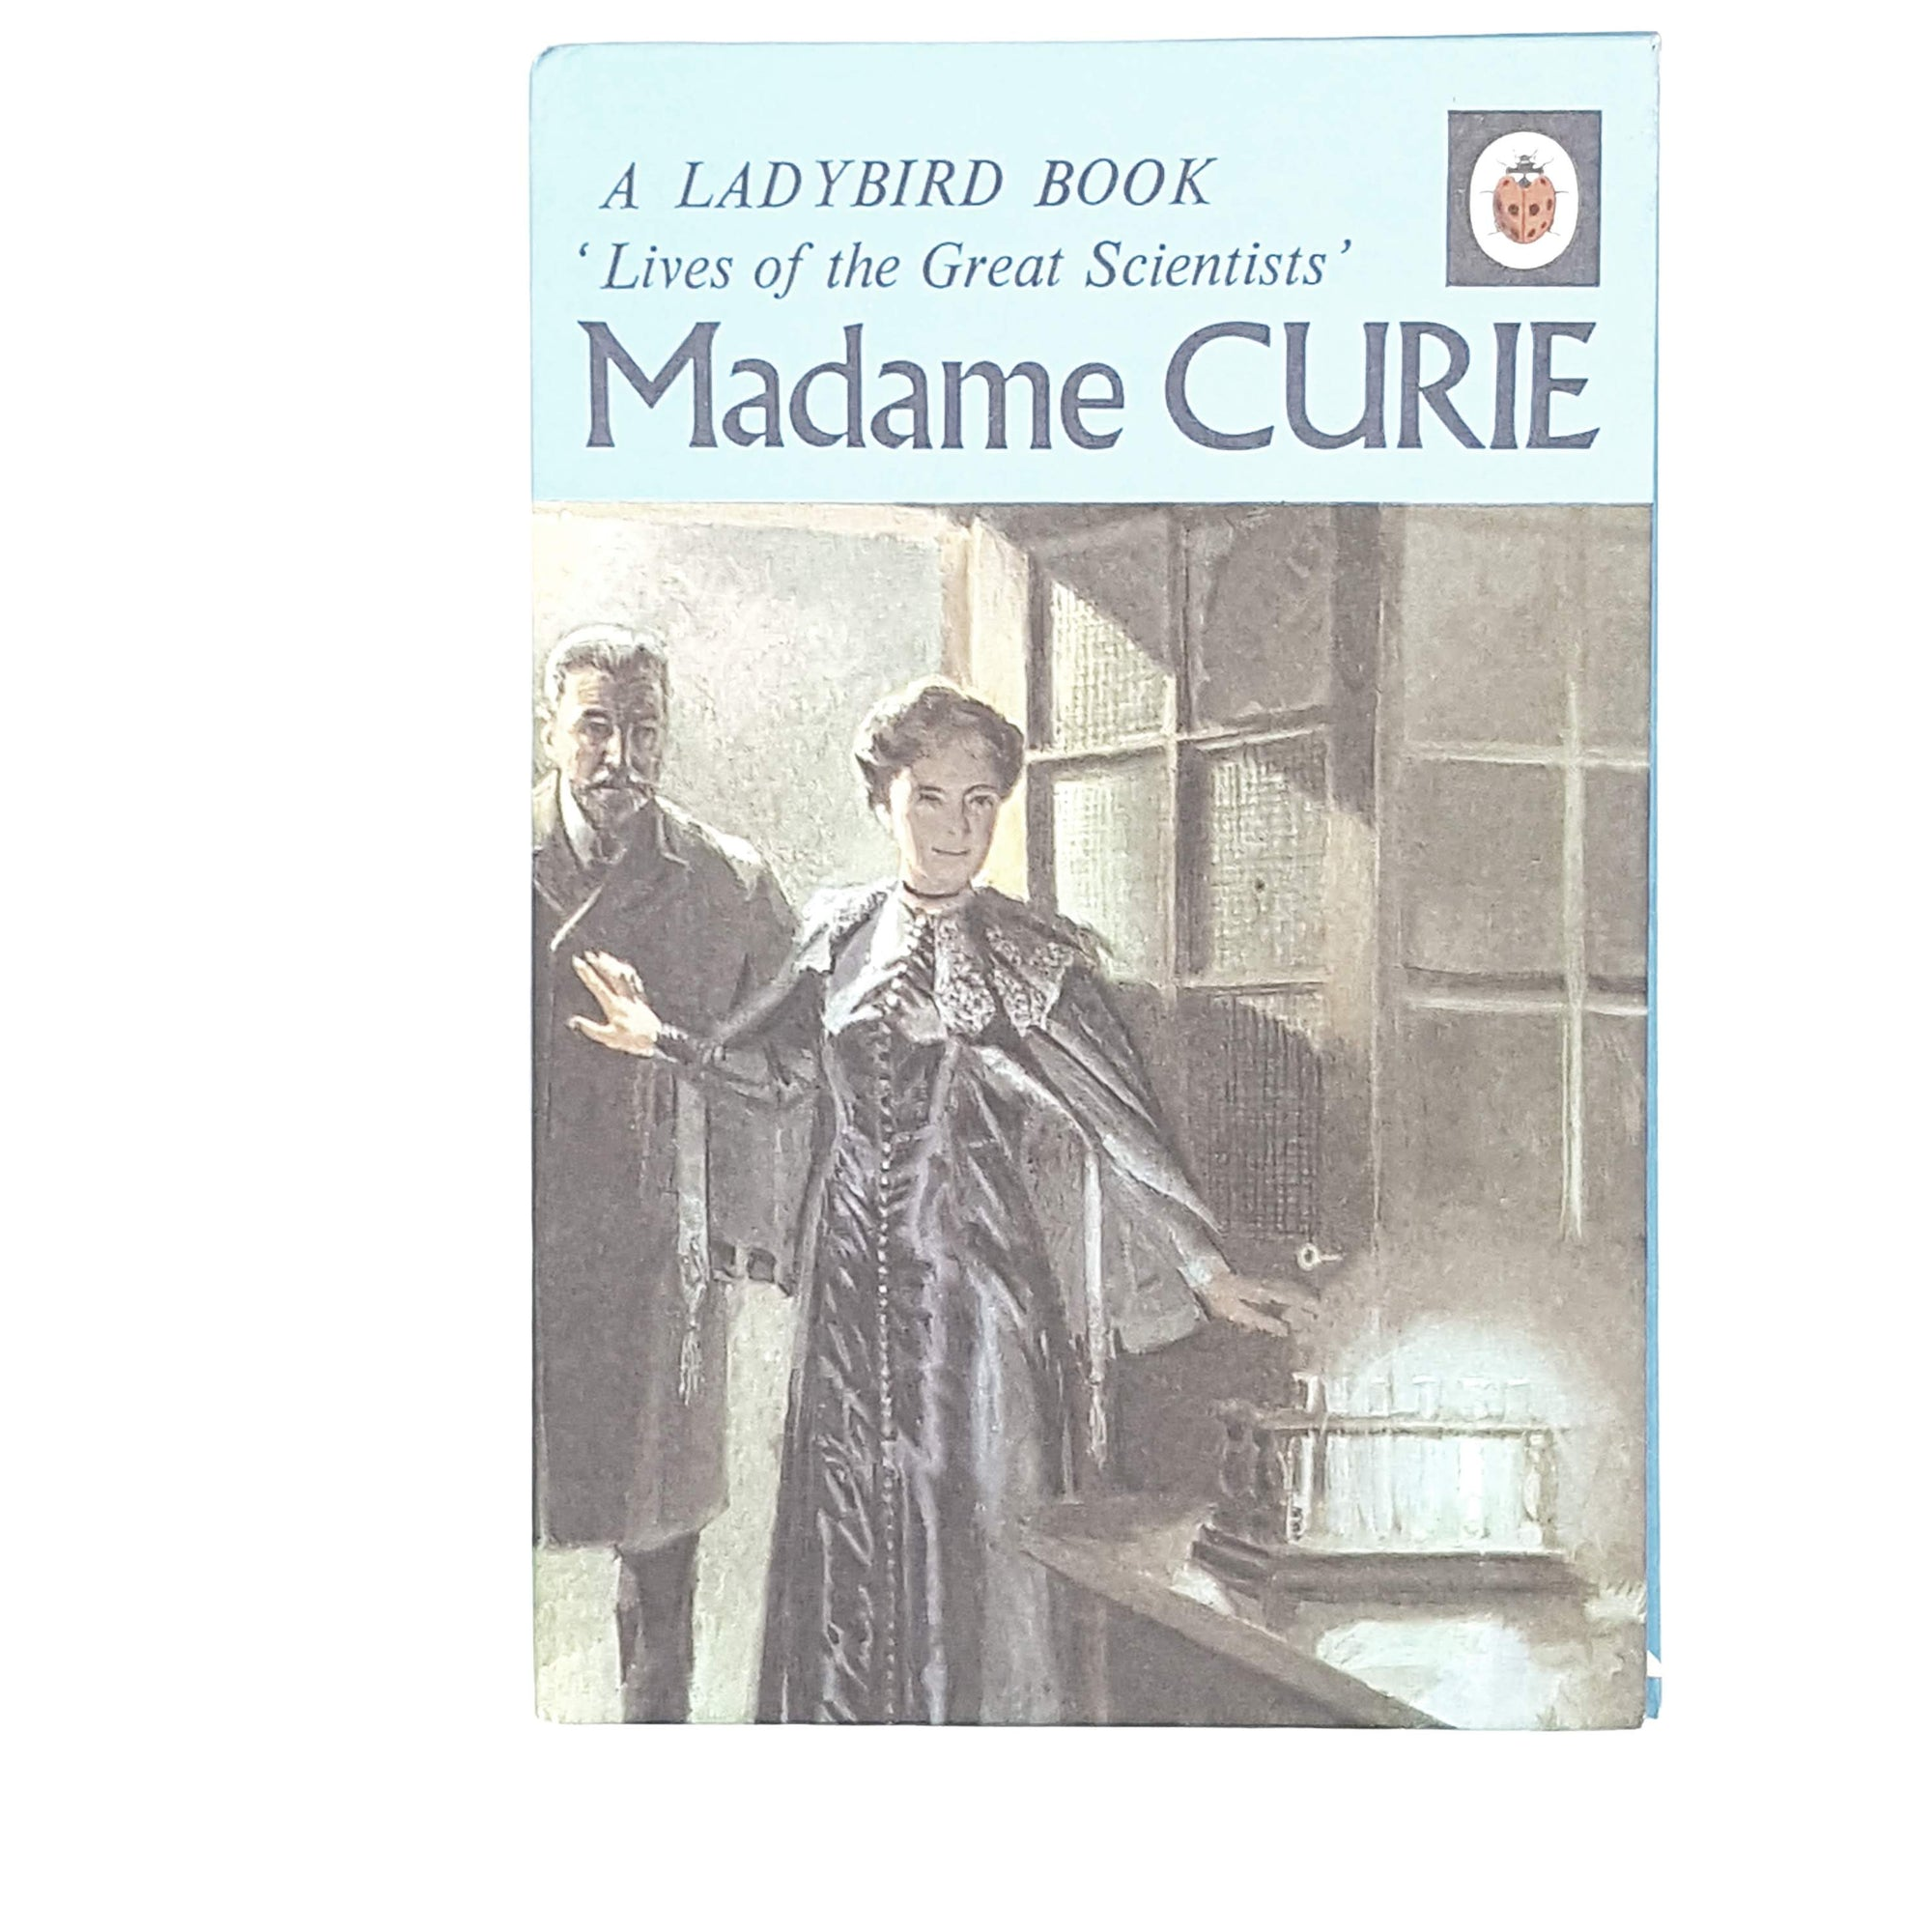 Ladybird History: Madame Curie 1970